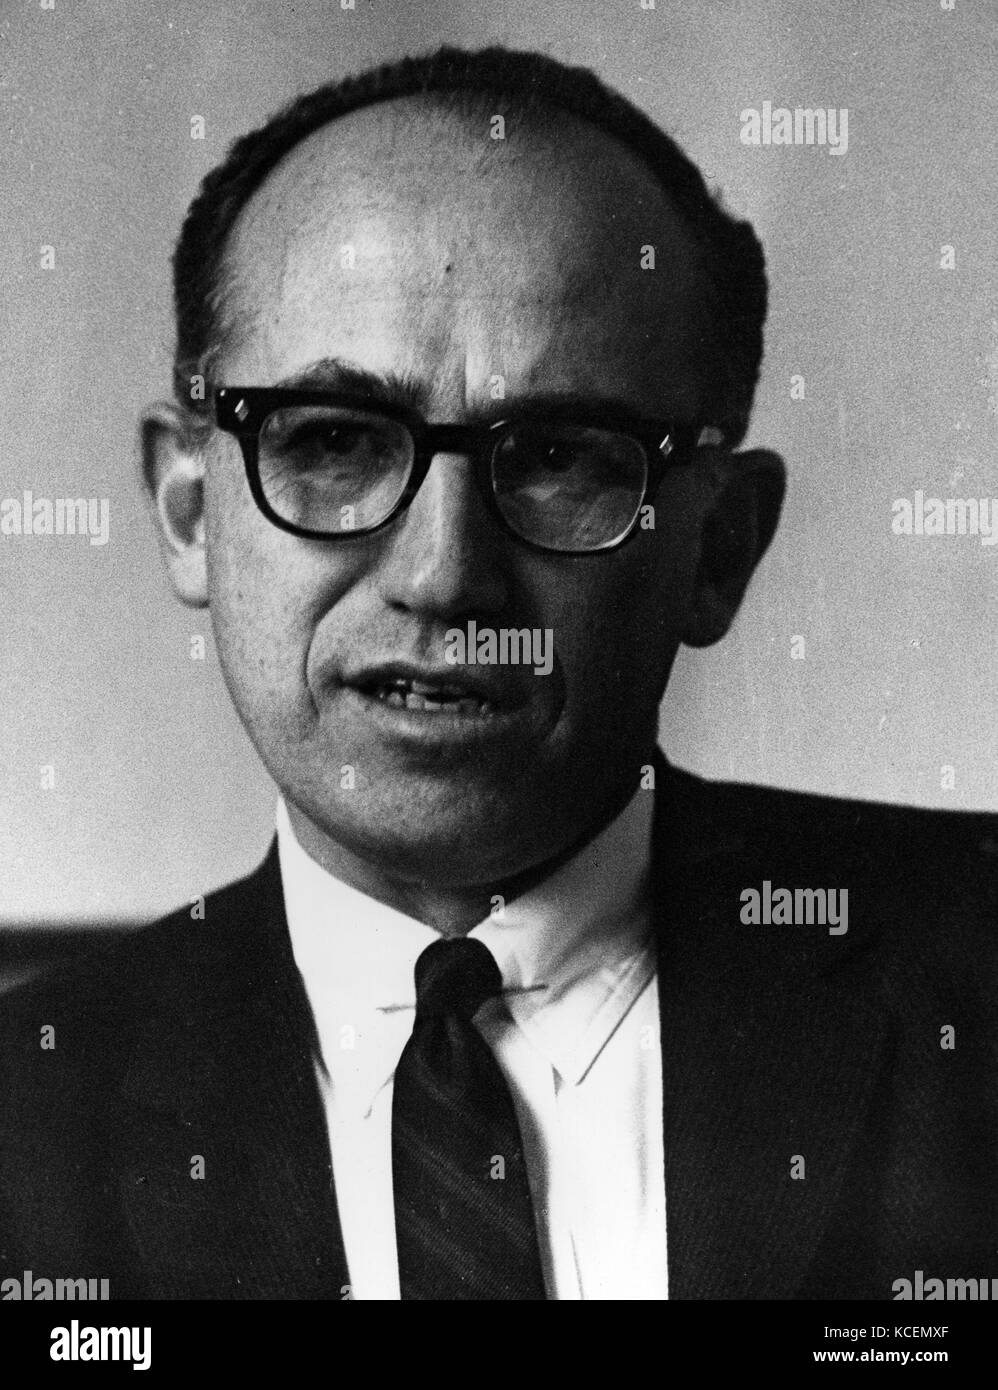 Jonas Edward Salk (1914 – 1995) American medical researcher and virologist. He discovered and developed one of the - Stock Image